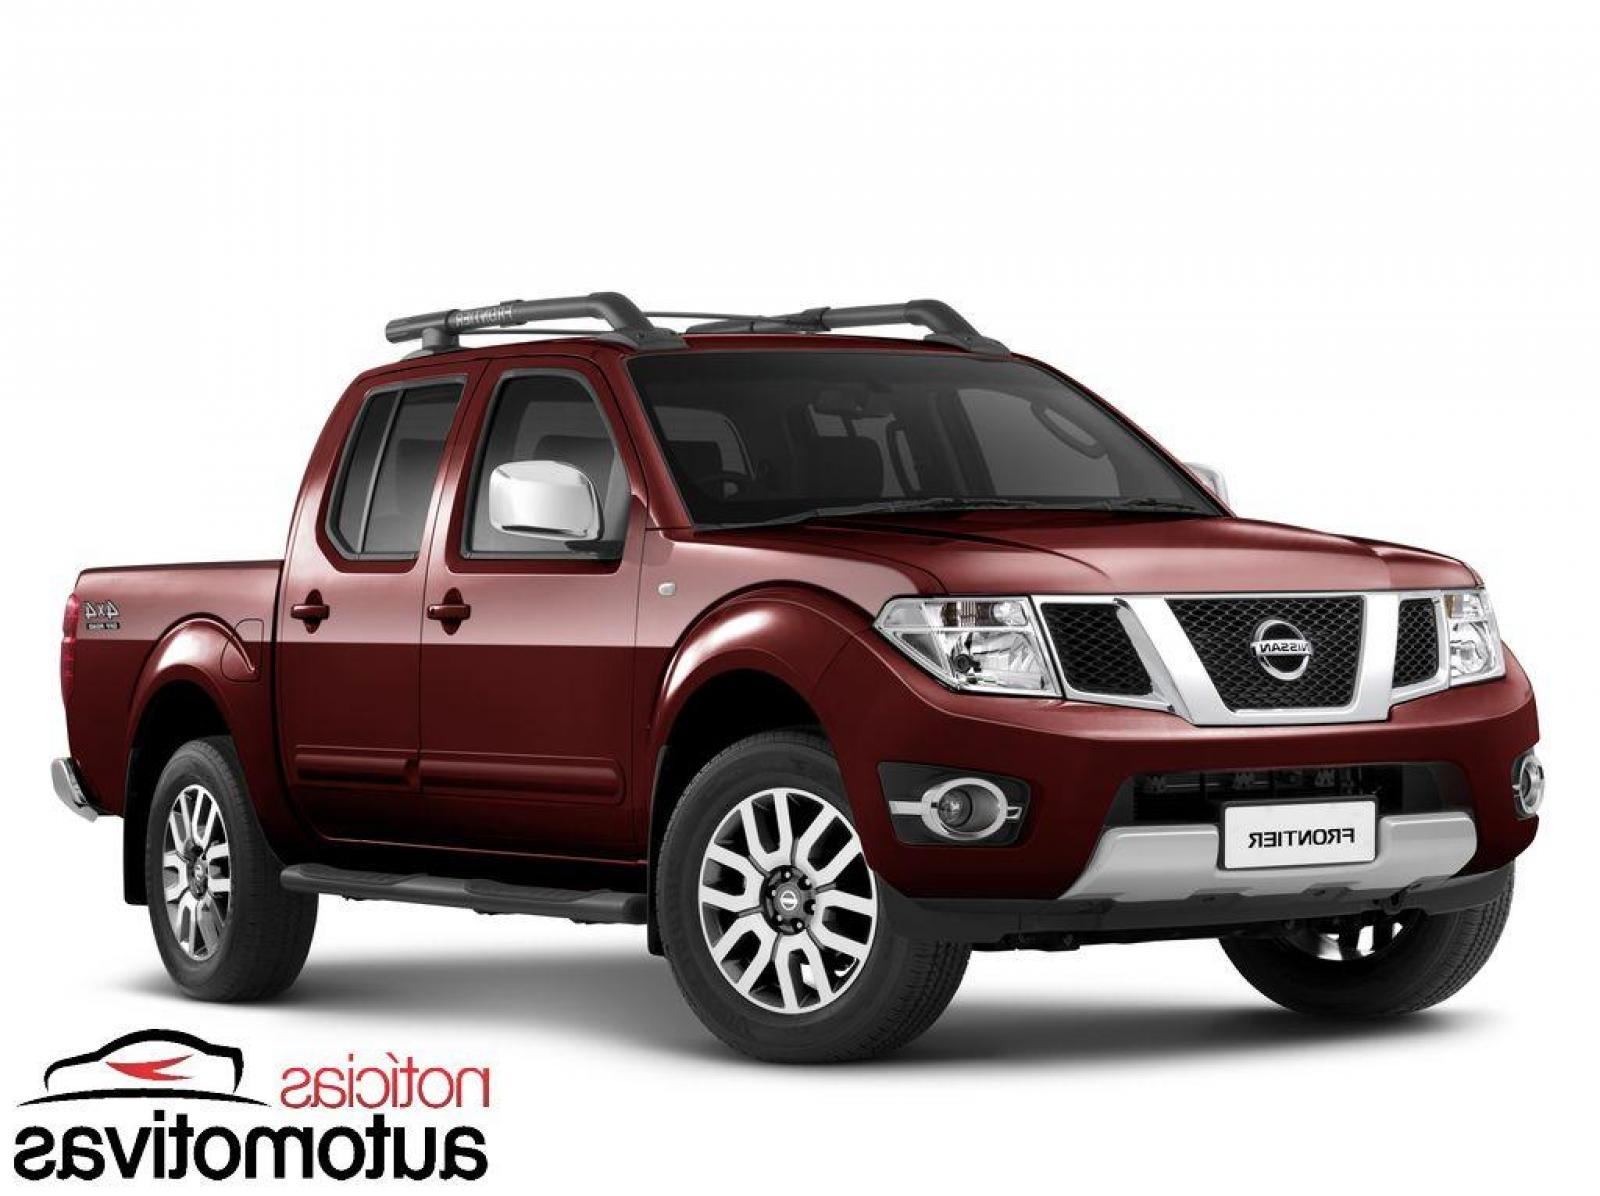 2014 Nissan Frontier Camshaft Drive Autos Post